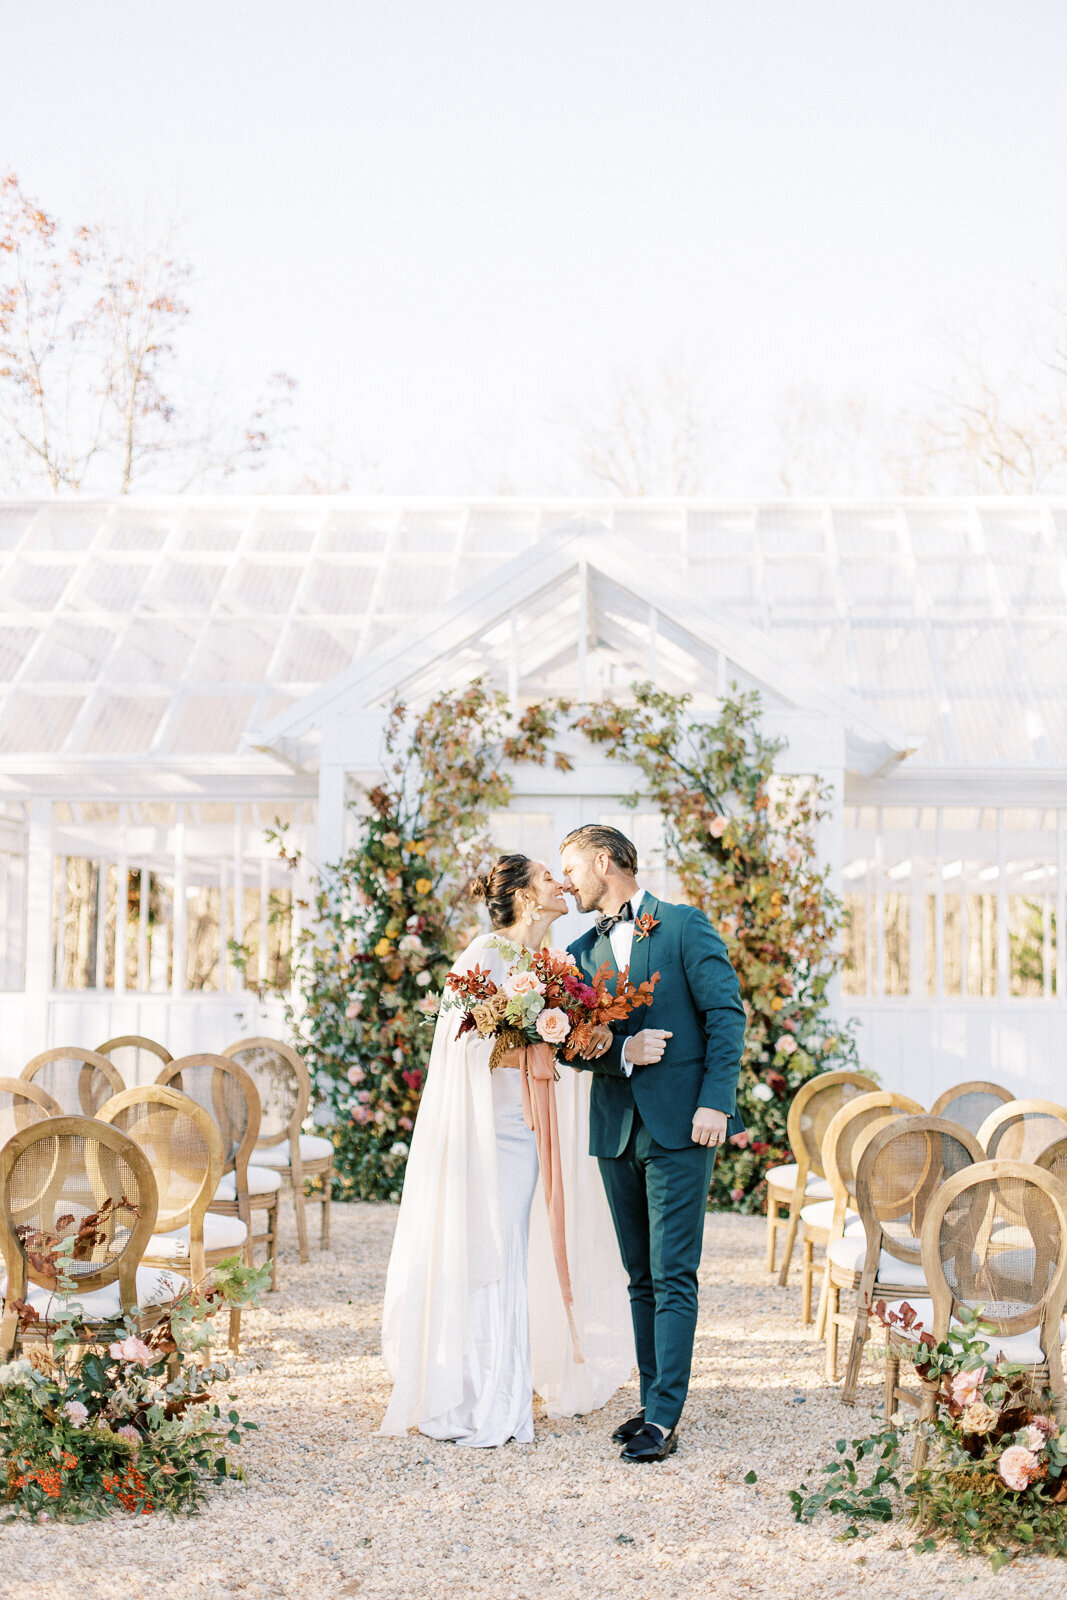 Classic and modern wedding couple at the Ivy Rose Barn greenhouse